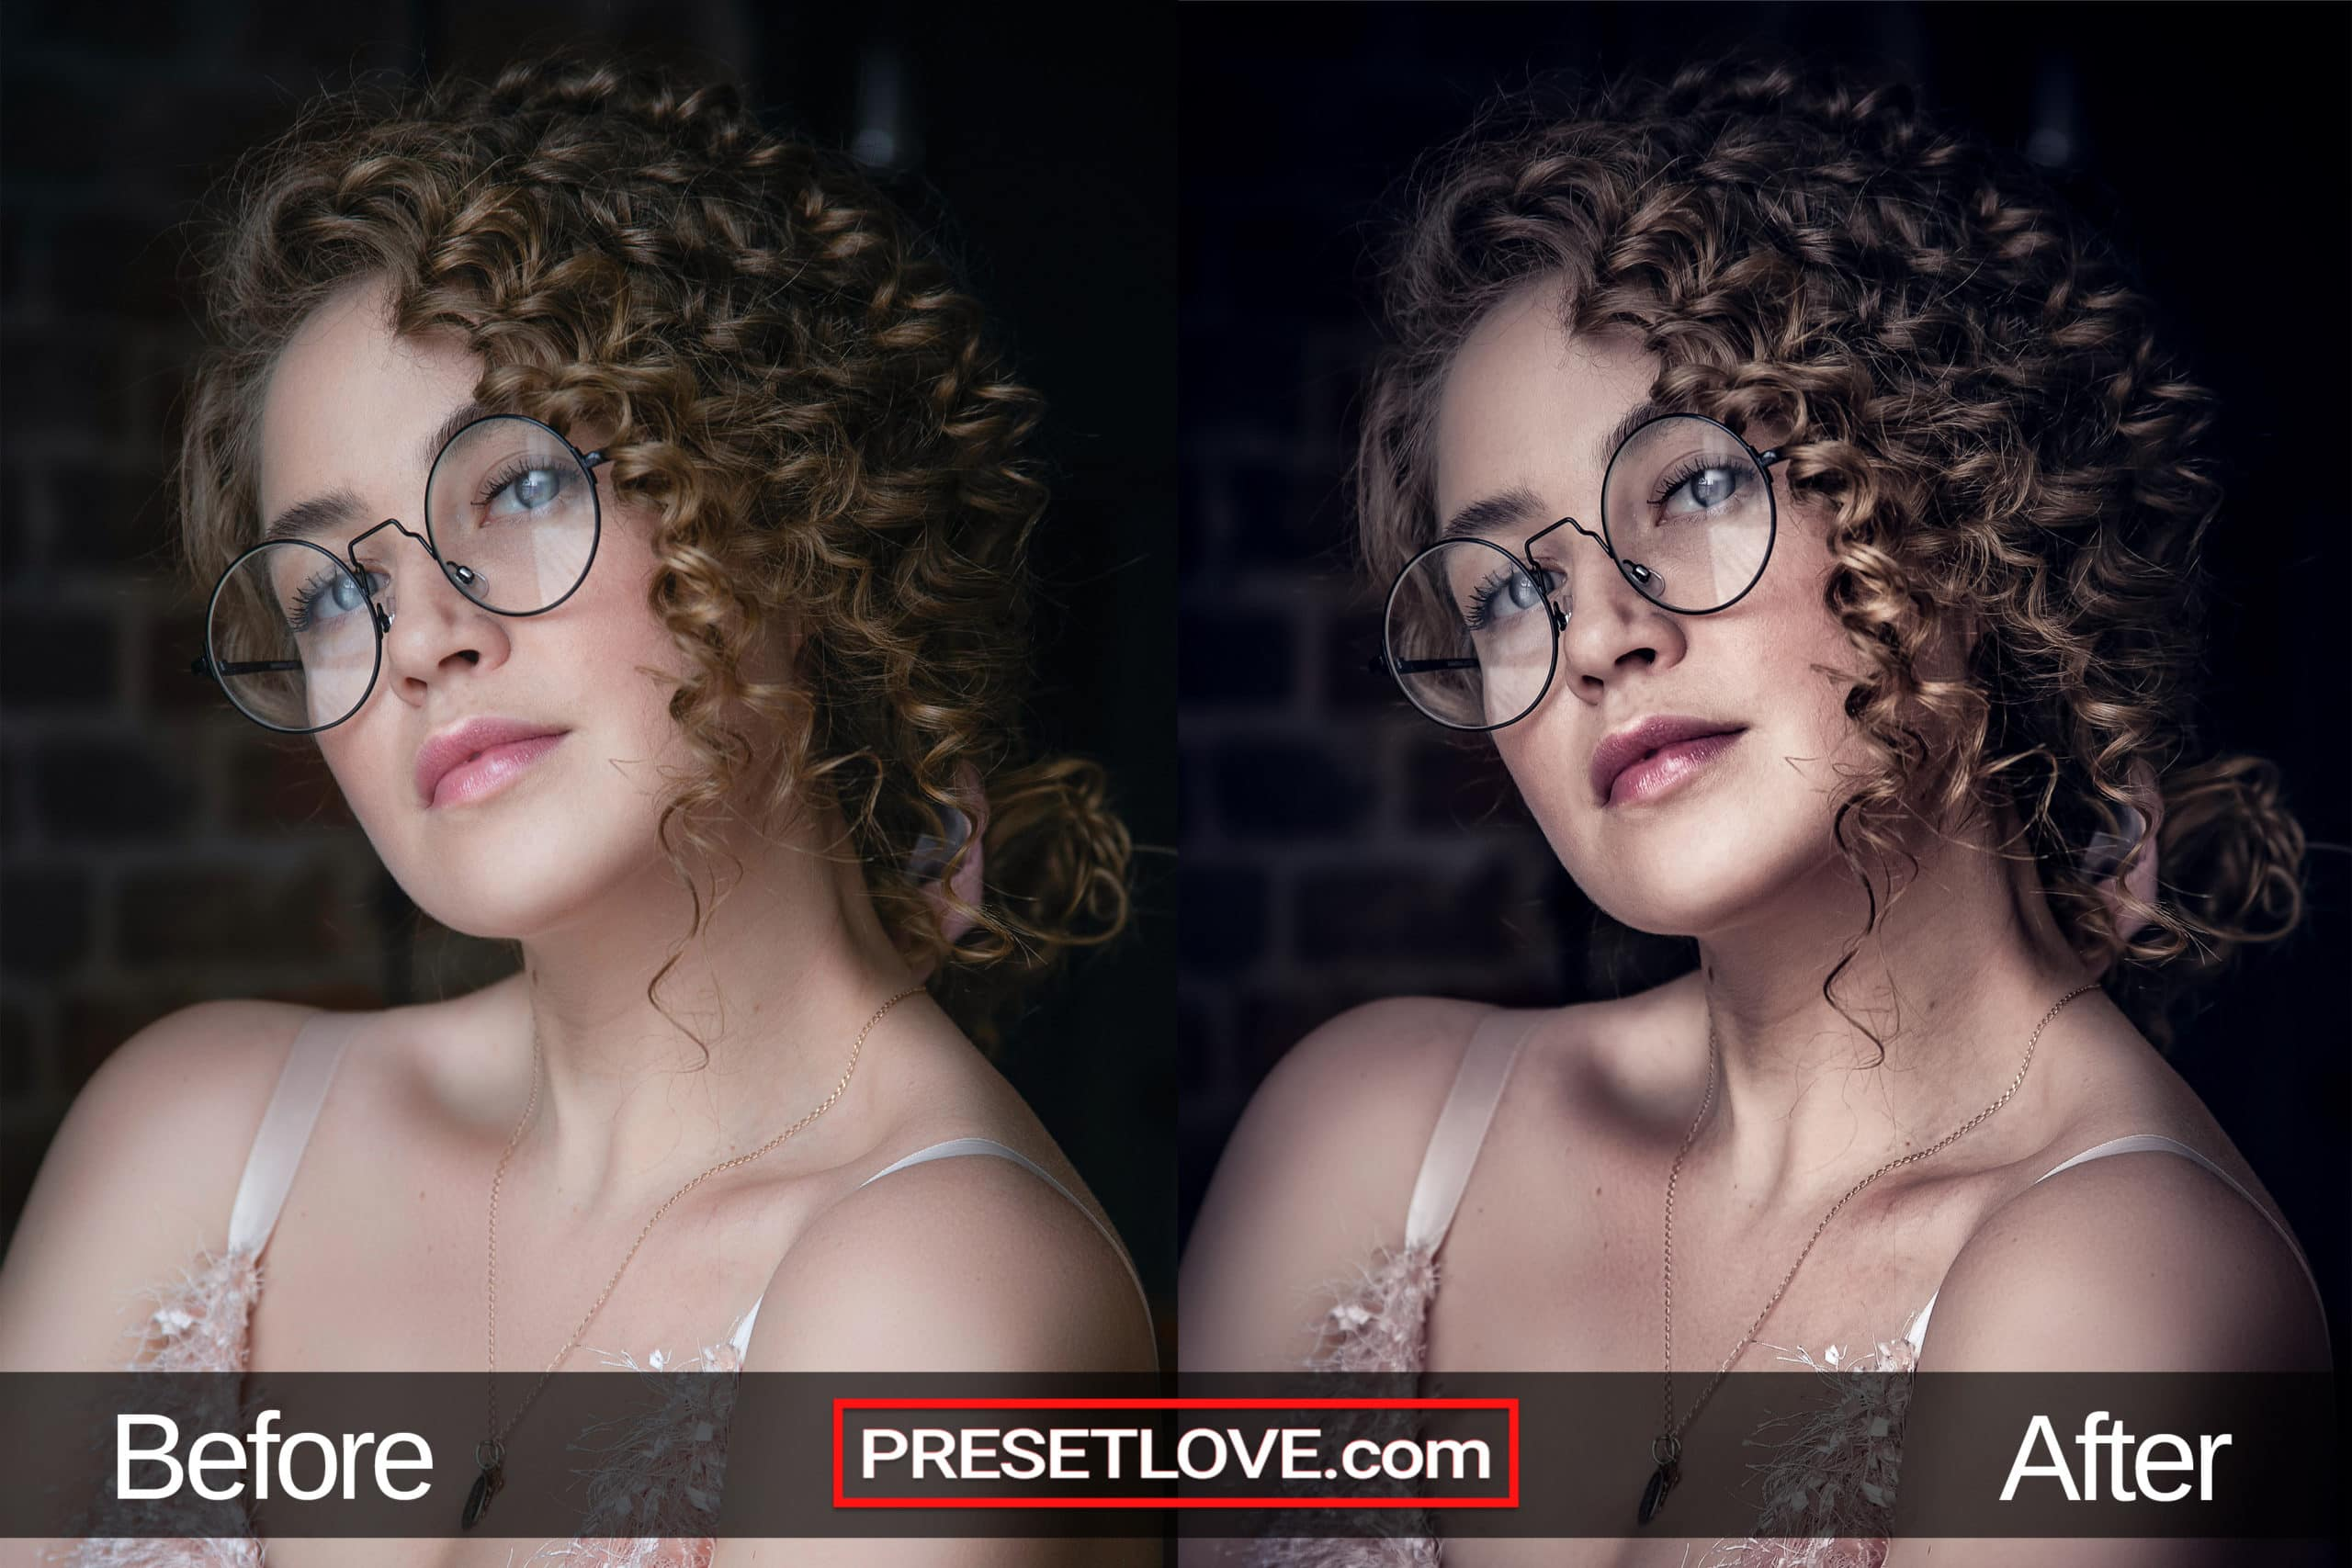 A photo of a woman with curls and eyeglasses that's enhanced by a  dramatic and moody portrait preset